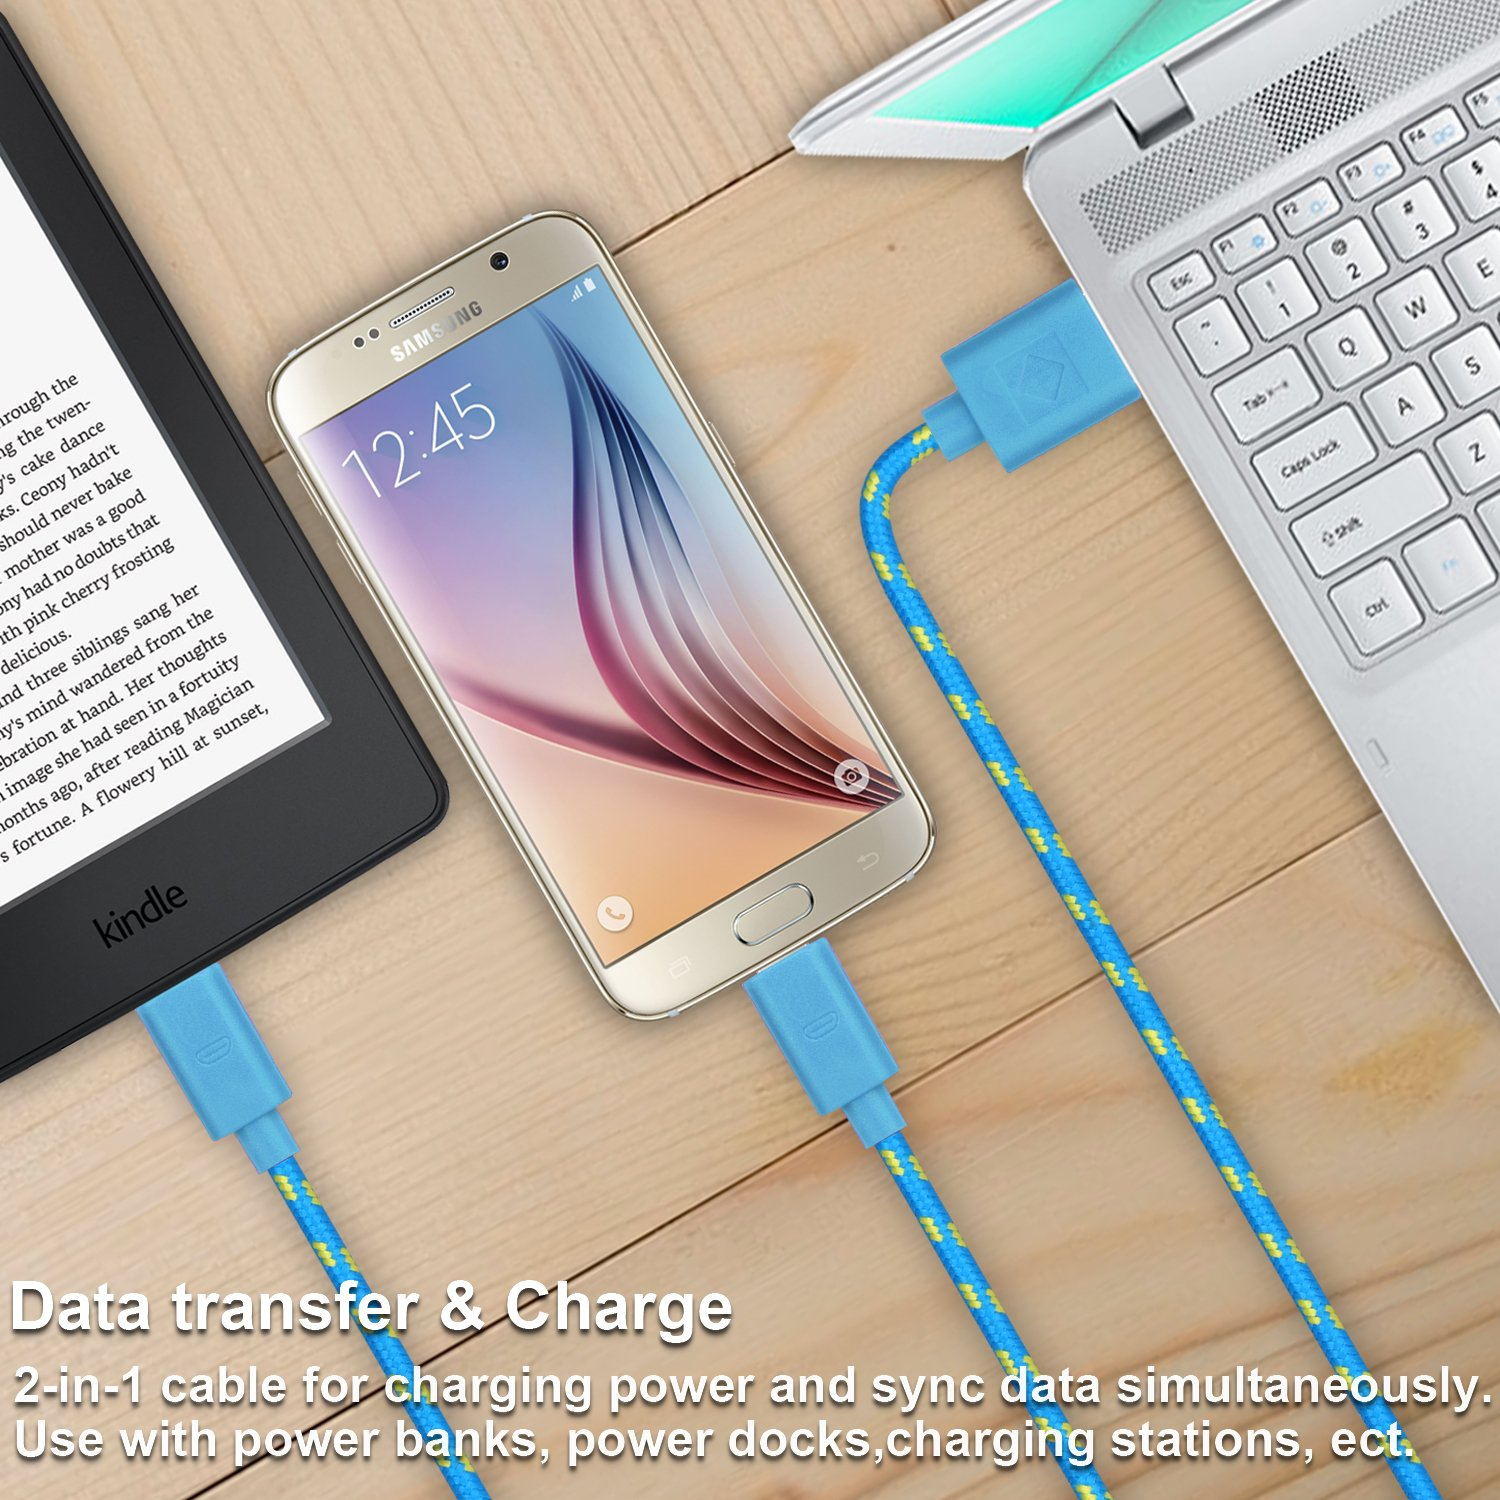 Micro USB Charger, Eversame 10-Pack Colorful 3Ft 1M Nylon Braided USB 2.0 A Male to Micro B Data Sync and Charging Cable Cord For Android Phones, Samsung Galaxy S6 Edge Plus/Note 5, HTC, LG and More by Eversame (Image #4)